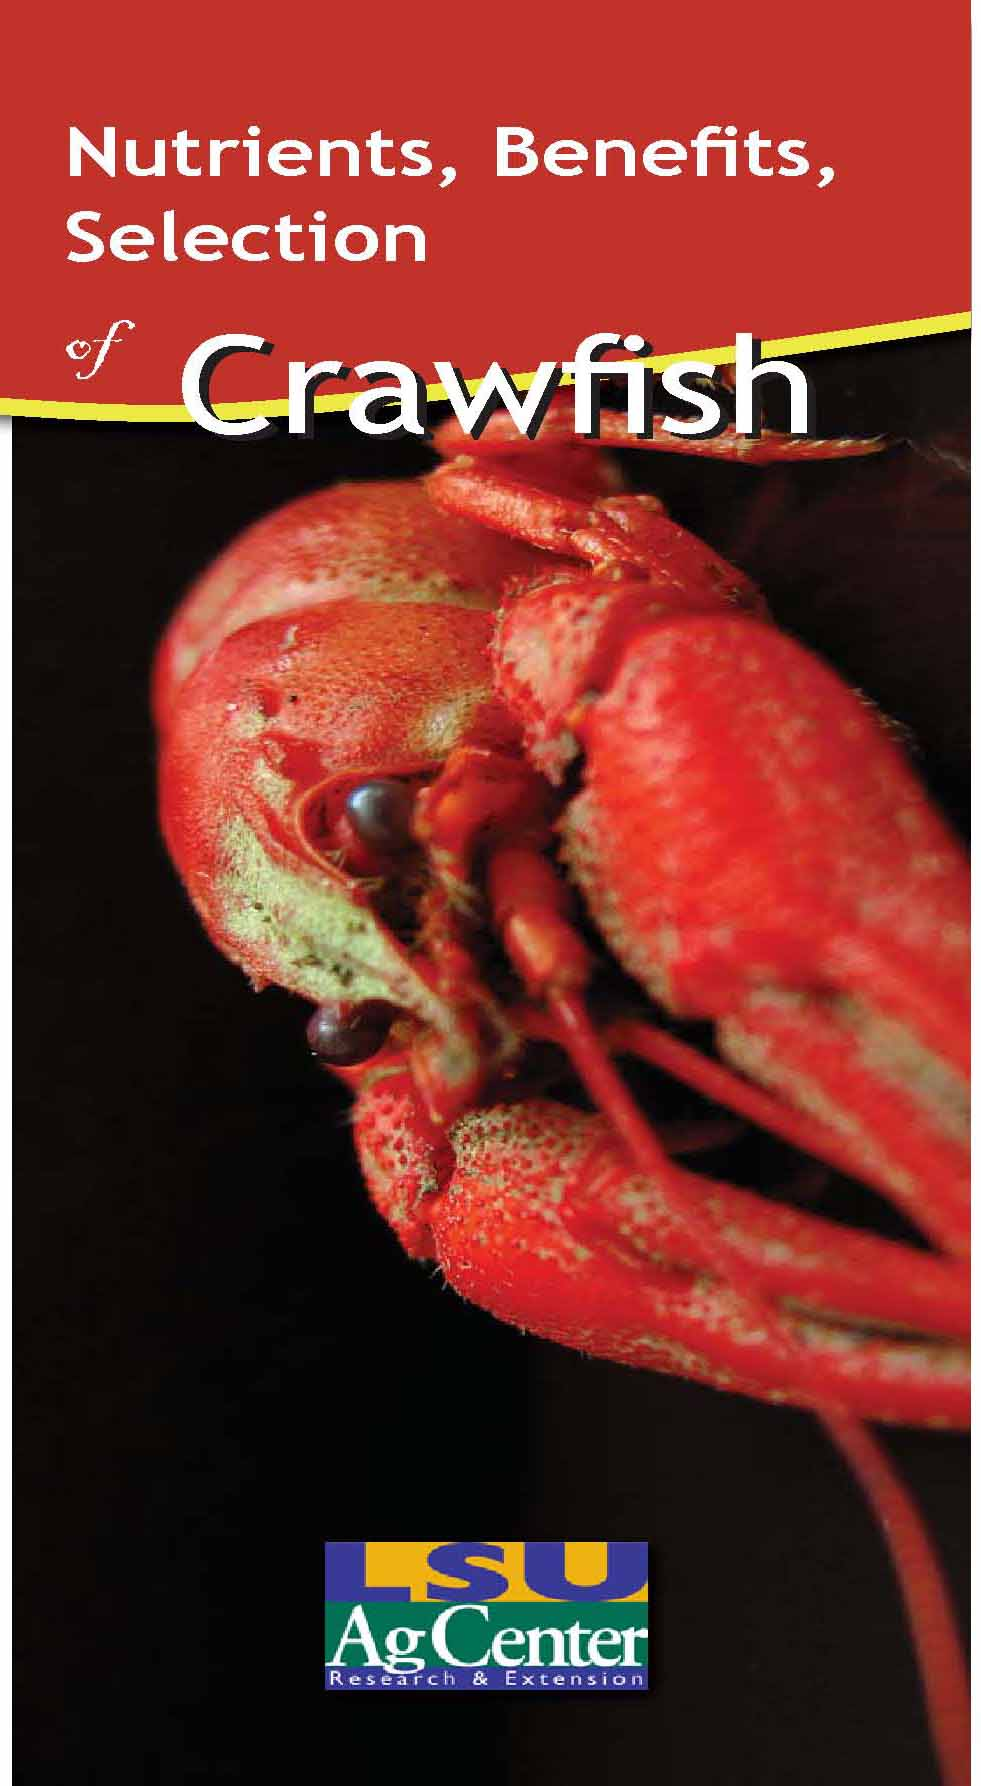 Nutritional Benefits of Crawfish